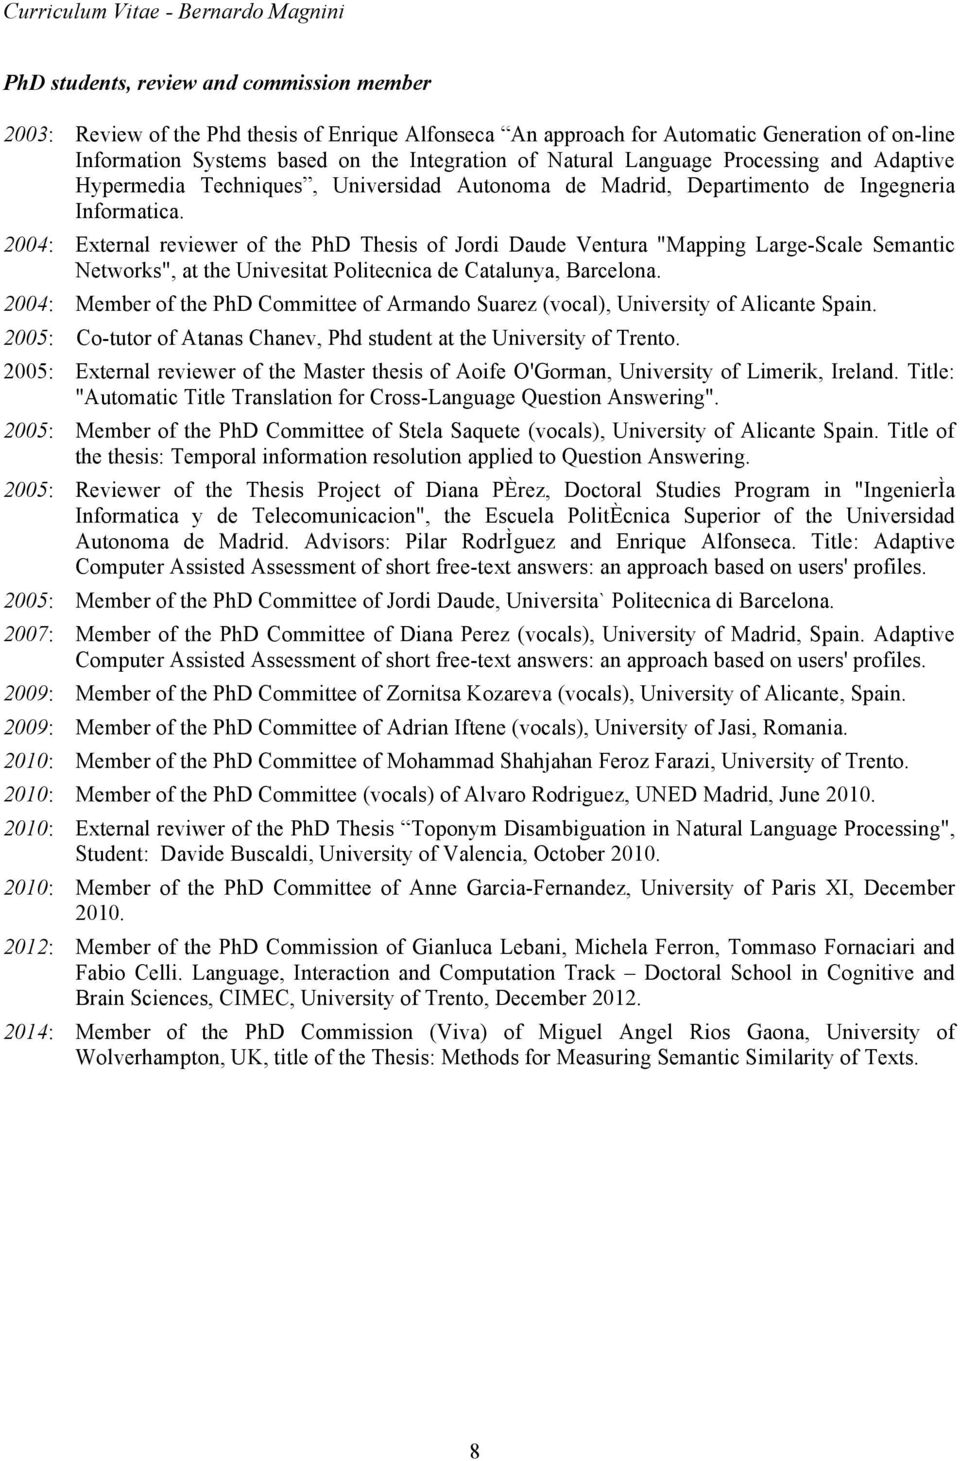 "2004: External reviewer of the PhD Thesis of Jordi Daude Ventura ""Mapping Large-Scale Semantic Networks"", at the Univesitat Politecnica de Catalunya, Barcelona."